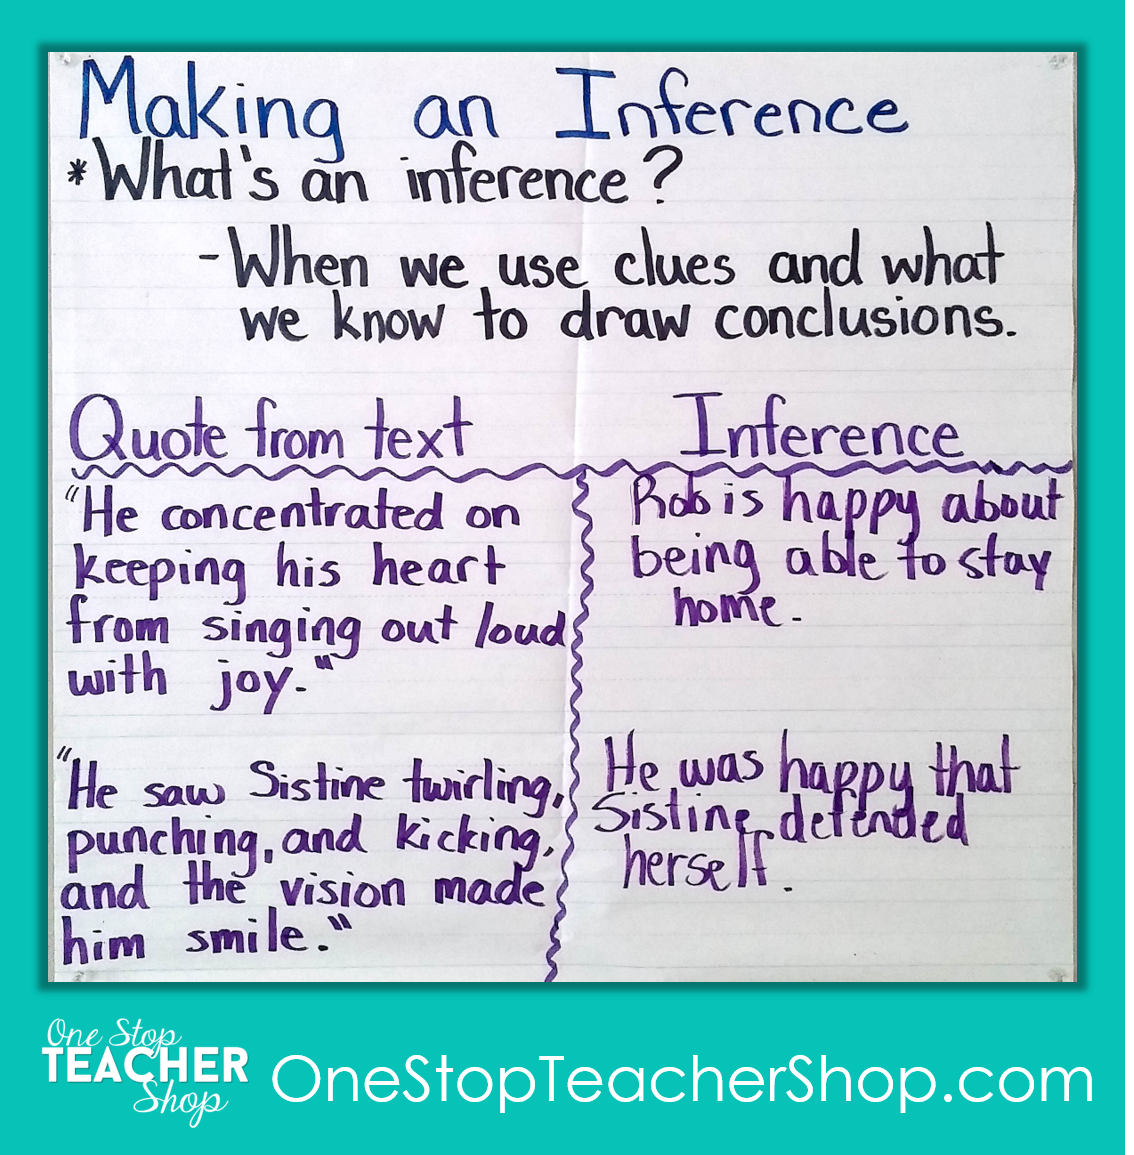 Making an Inference Anchor Chart - Check out my collection of anchor charts for math, reading, writing, and grammar. I love anchor charts even though I'm not so great at making them! Also, get some tips for using anchor charts effectively in your classroom.